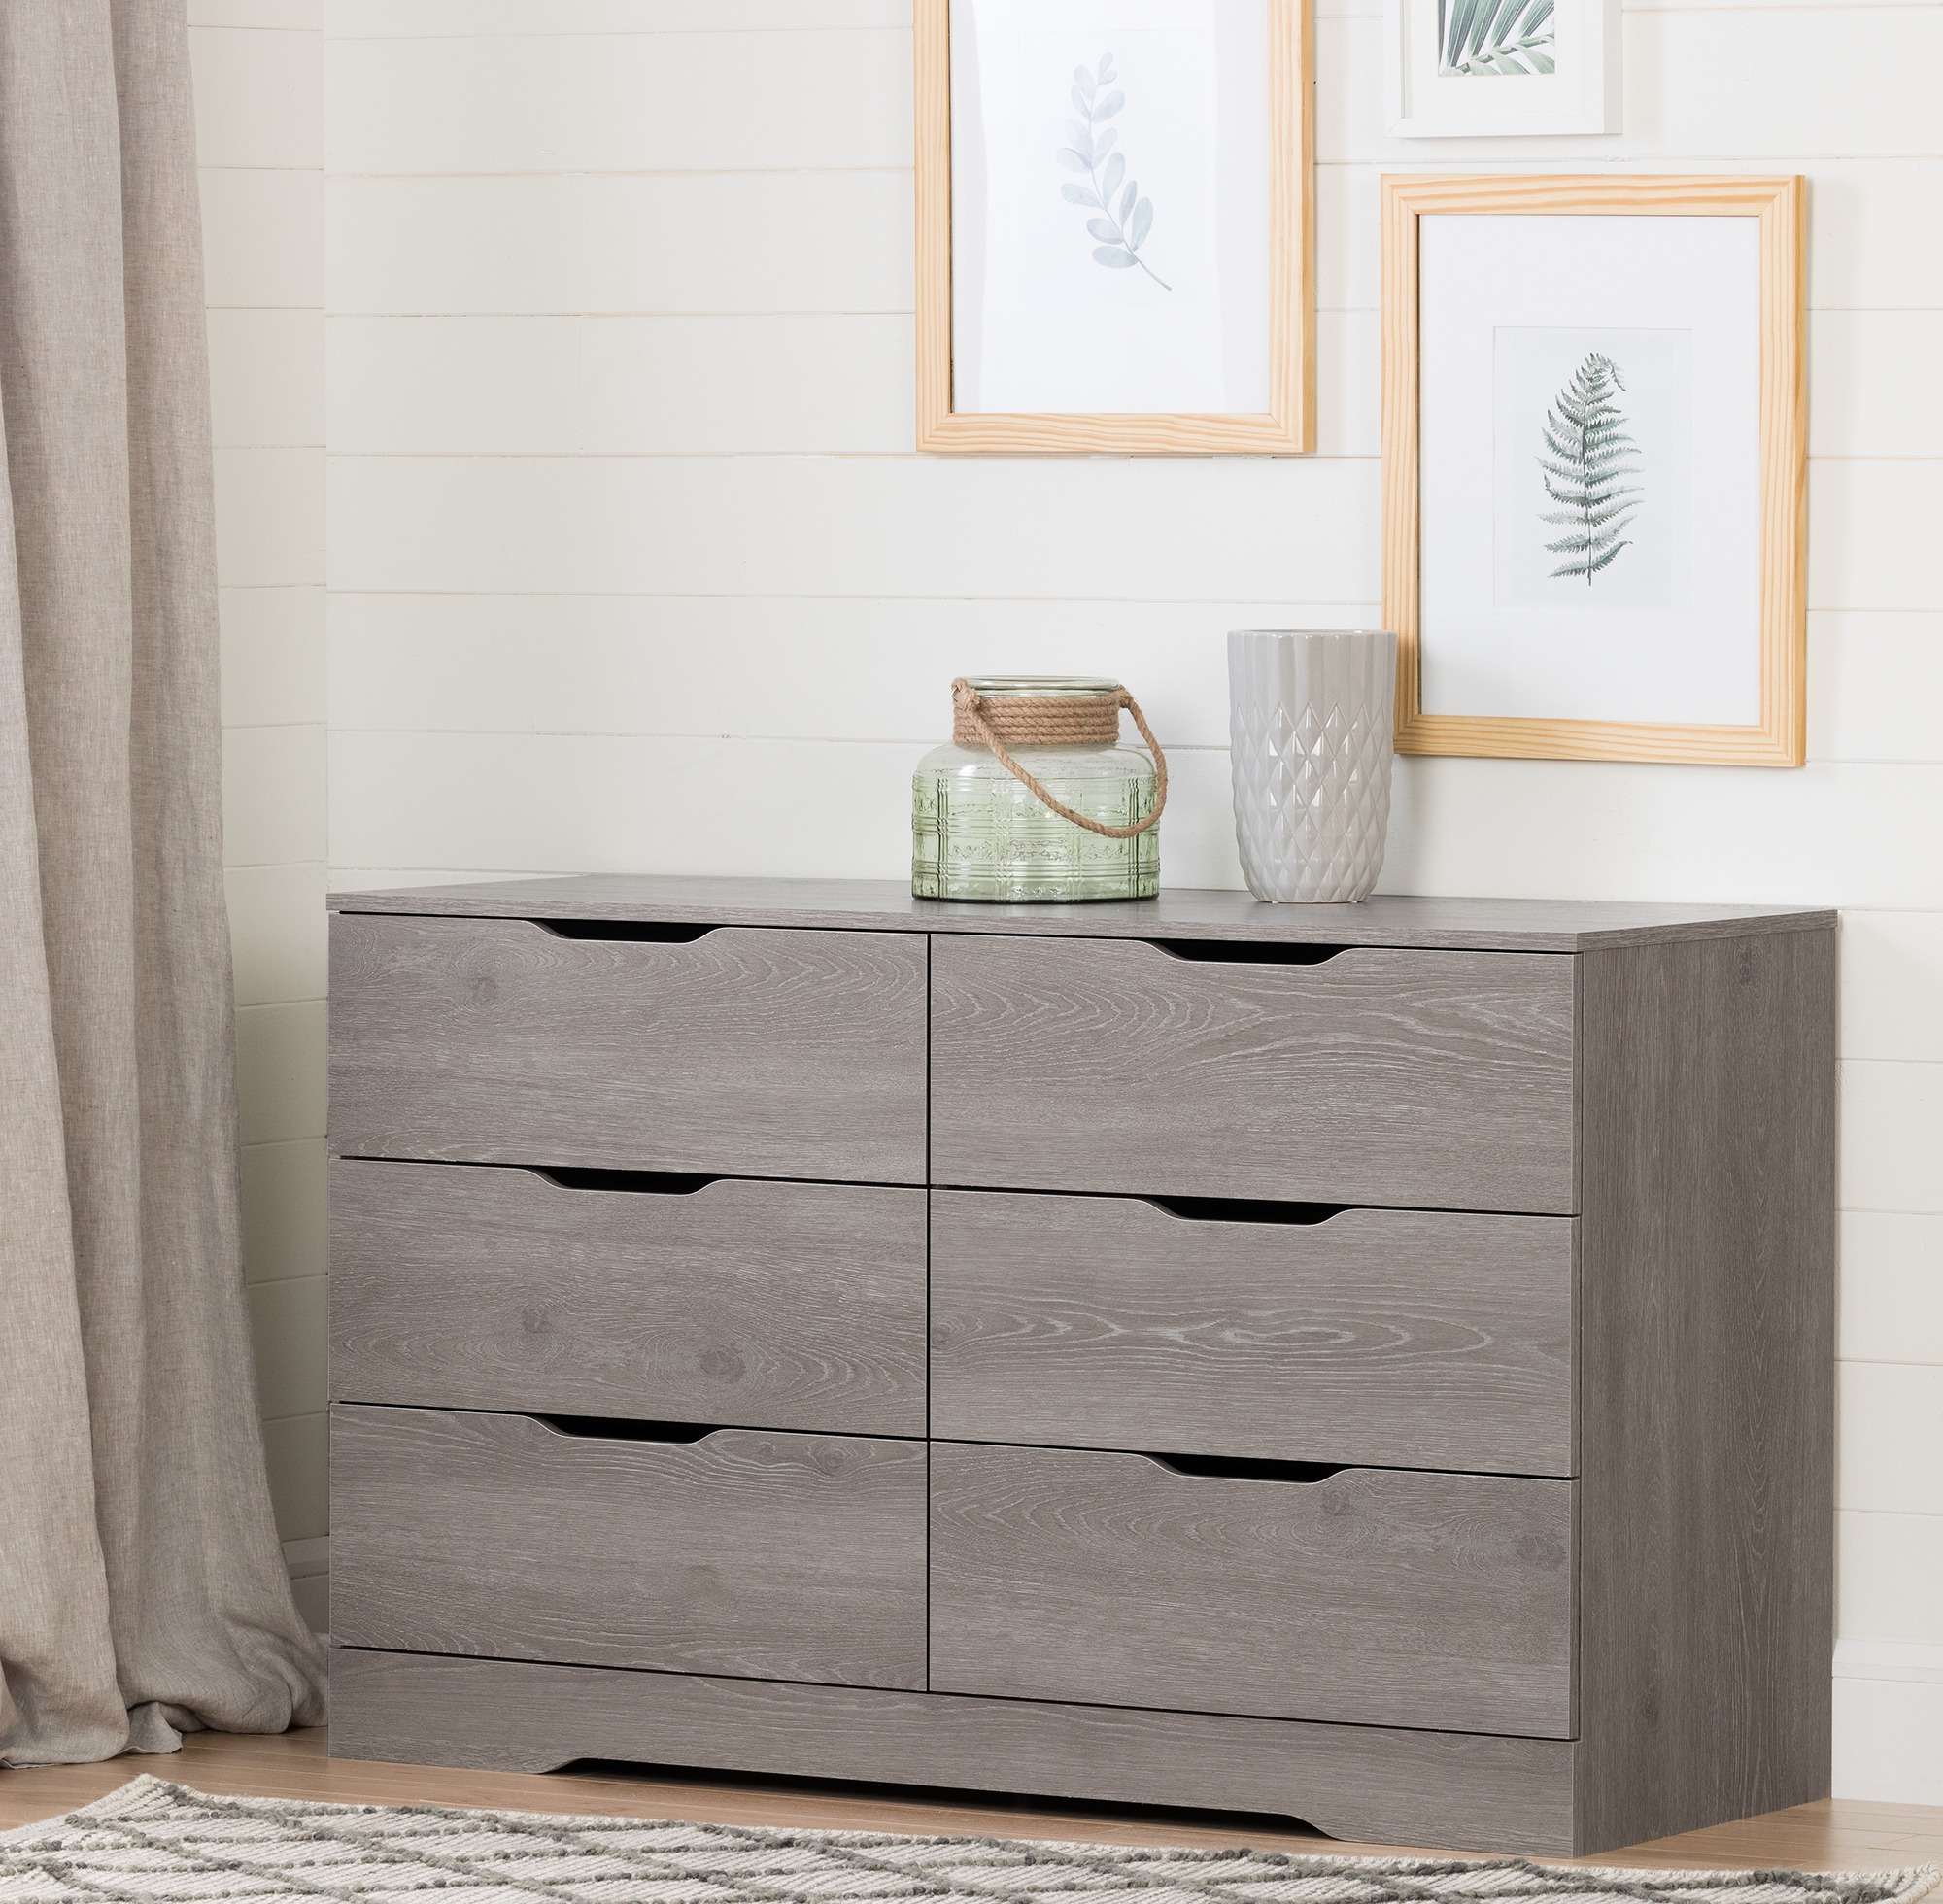 South Shore Holland 6-Drawer Double Dresser, Multiple Finishes by South Shore